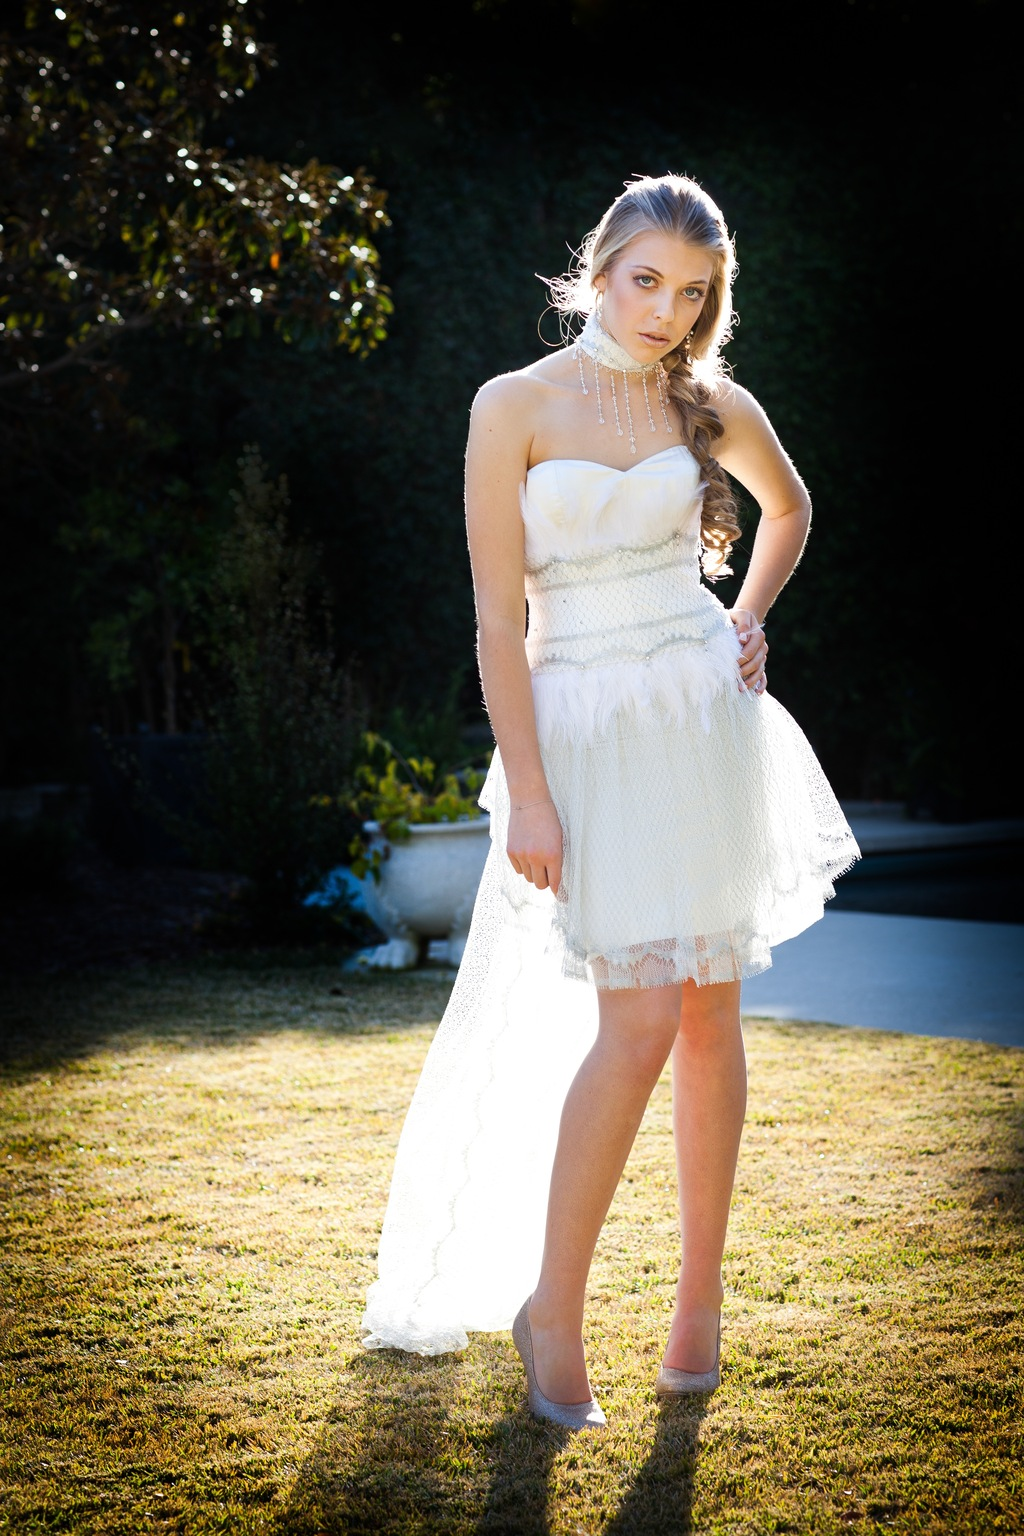 Cocoe-voci-wedding-dress-spring-2012-zoe.full